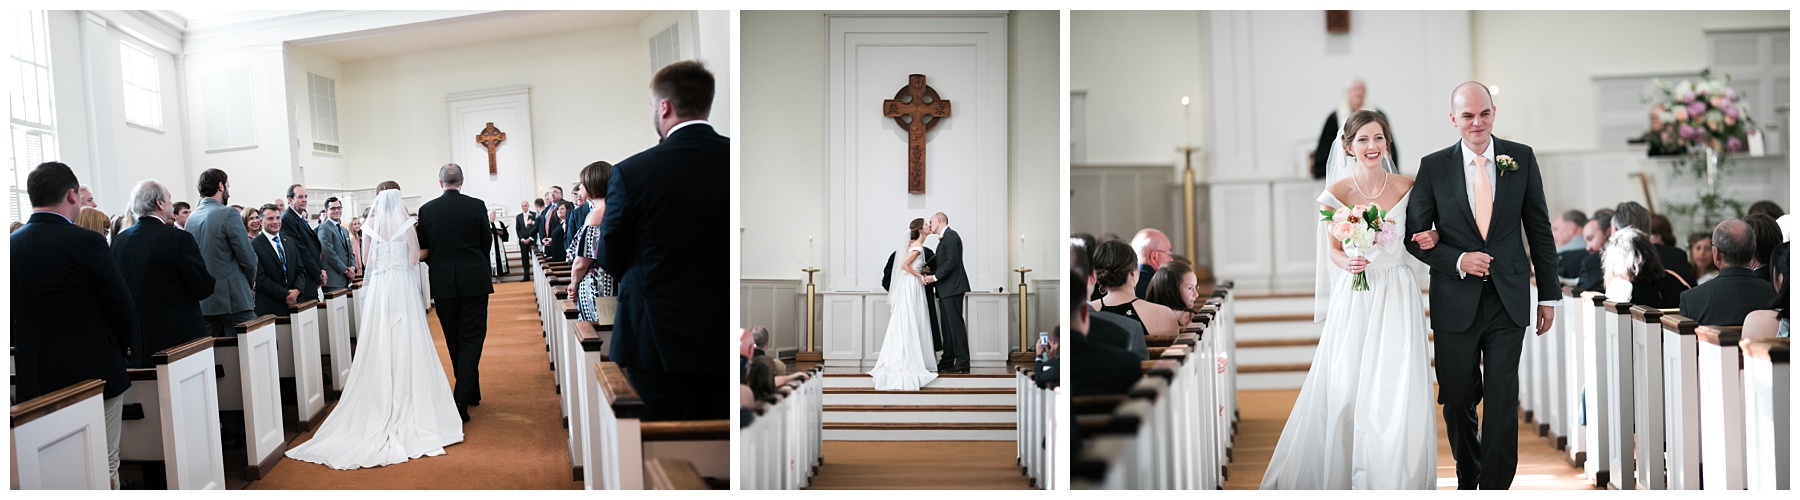 ceremony church wedding southern alabama classic presbeterian